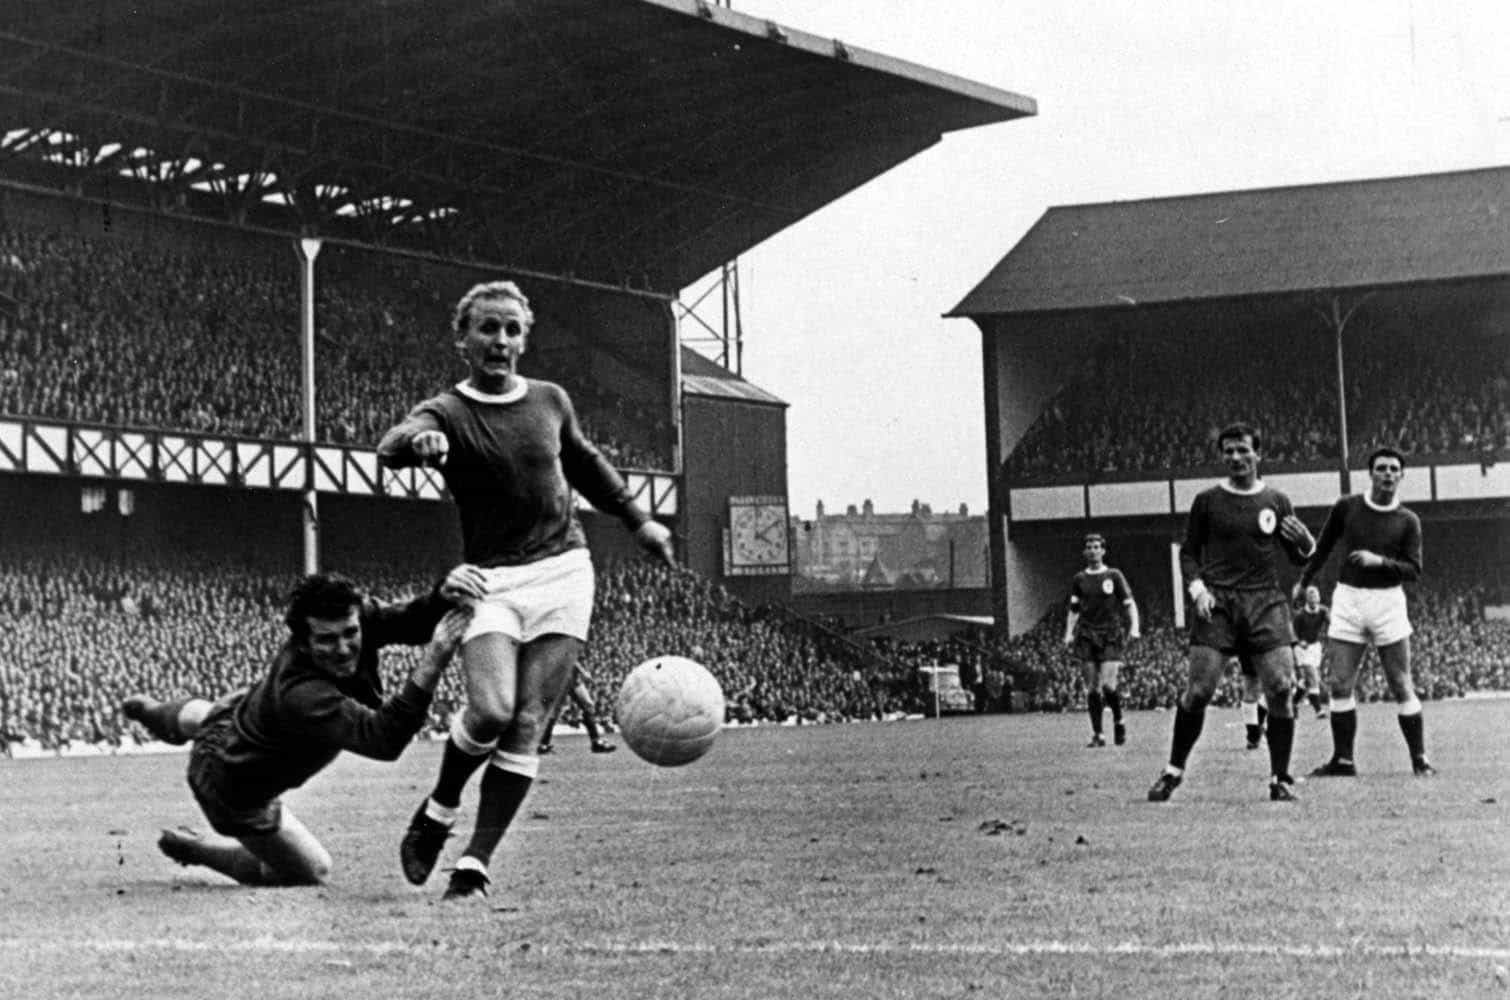 One of the forgotten greats Alex Young